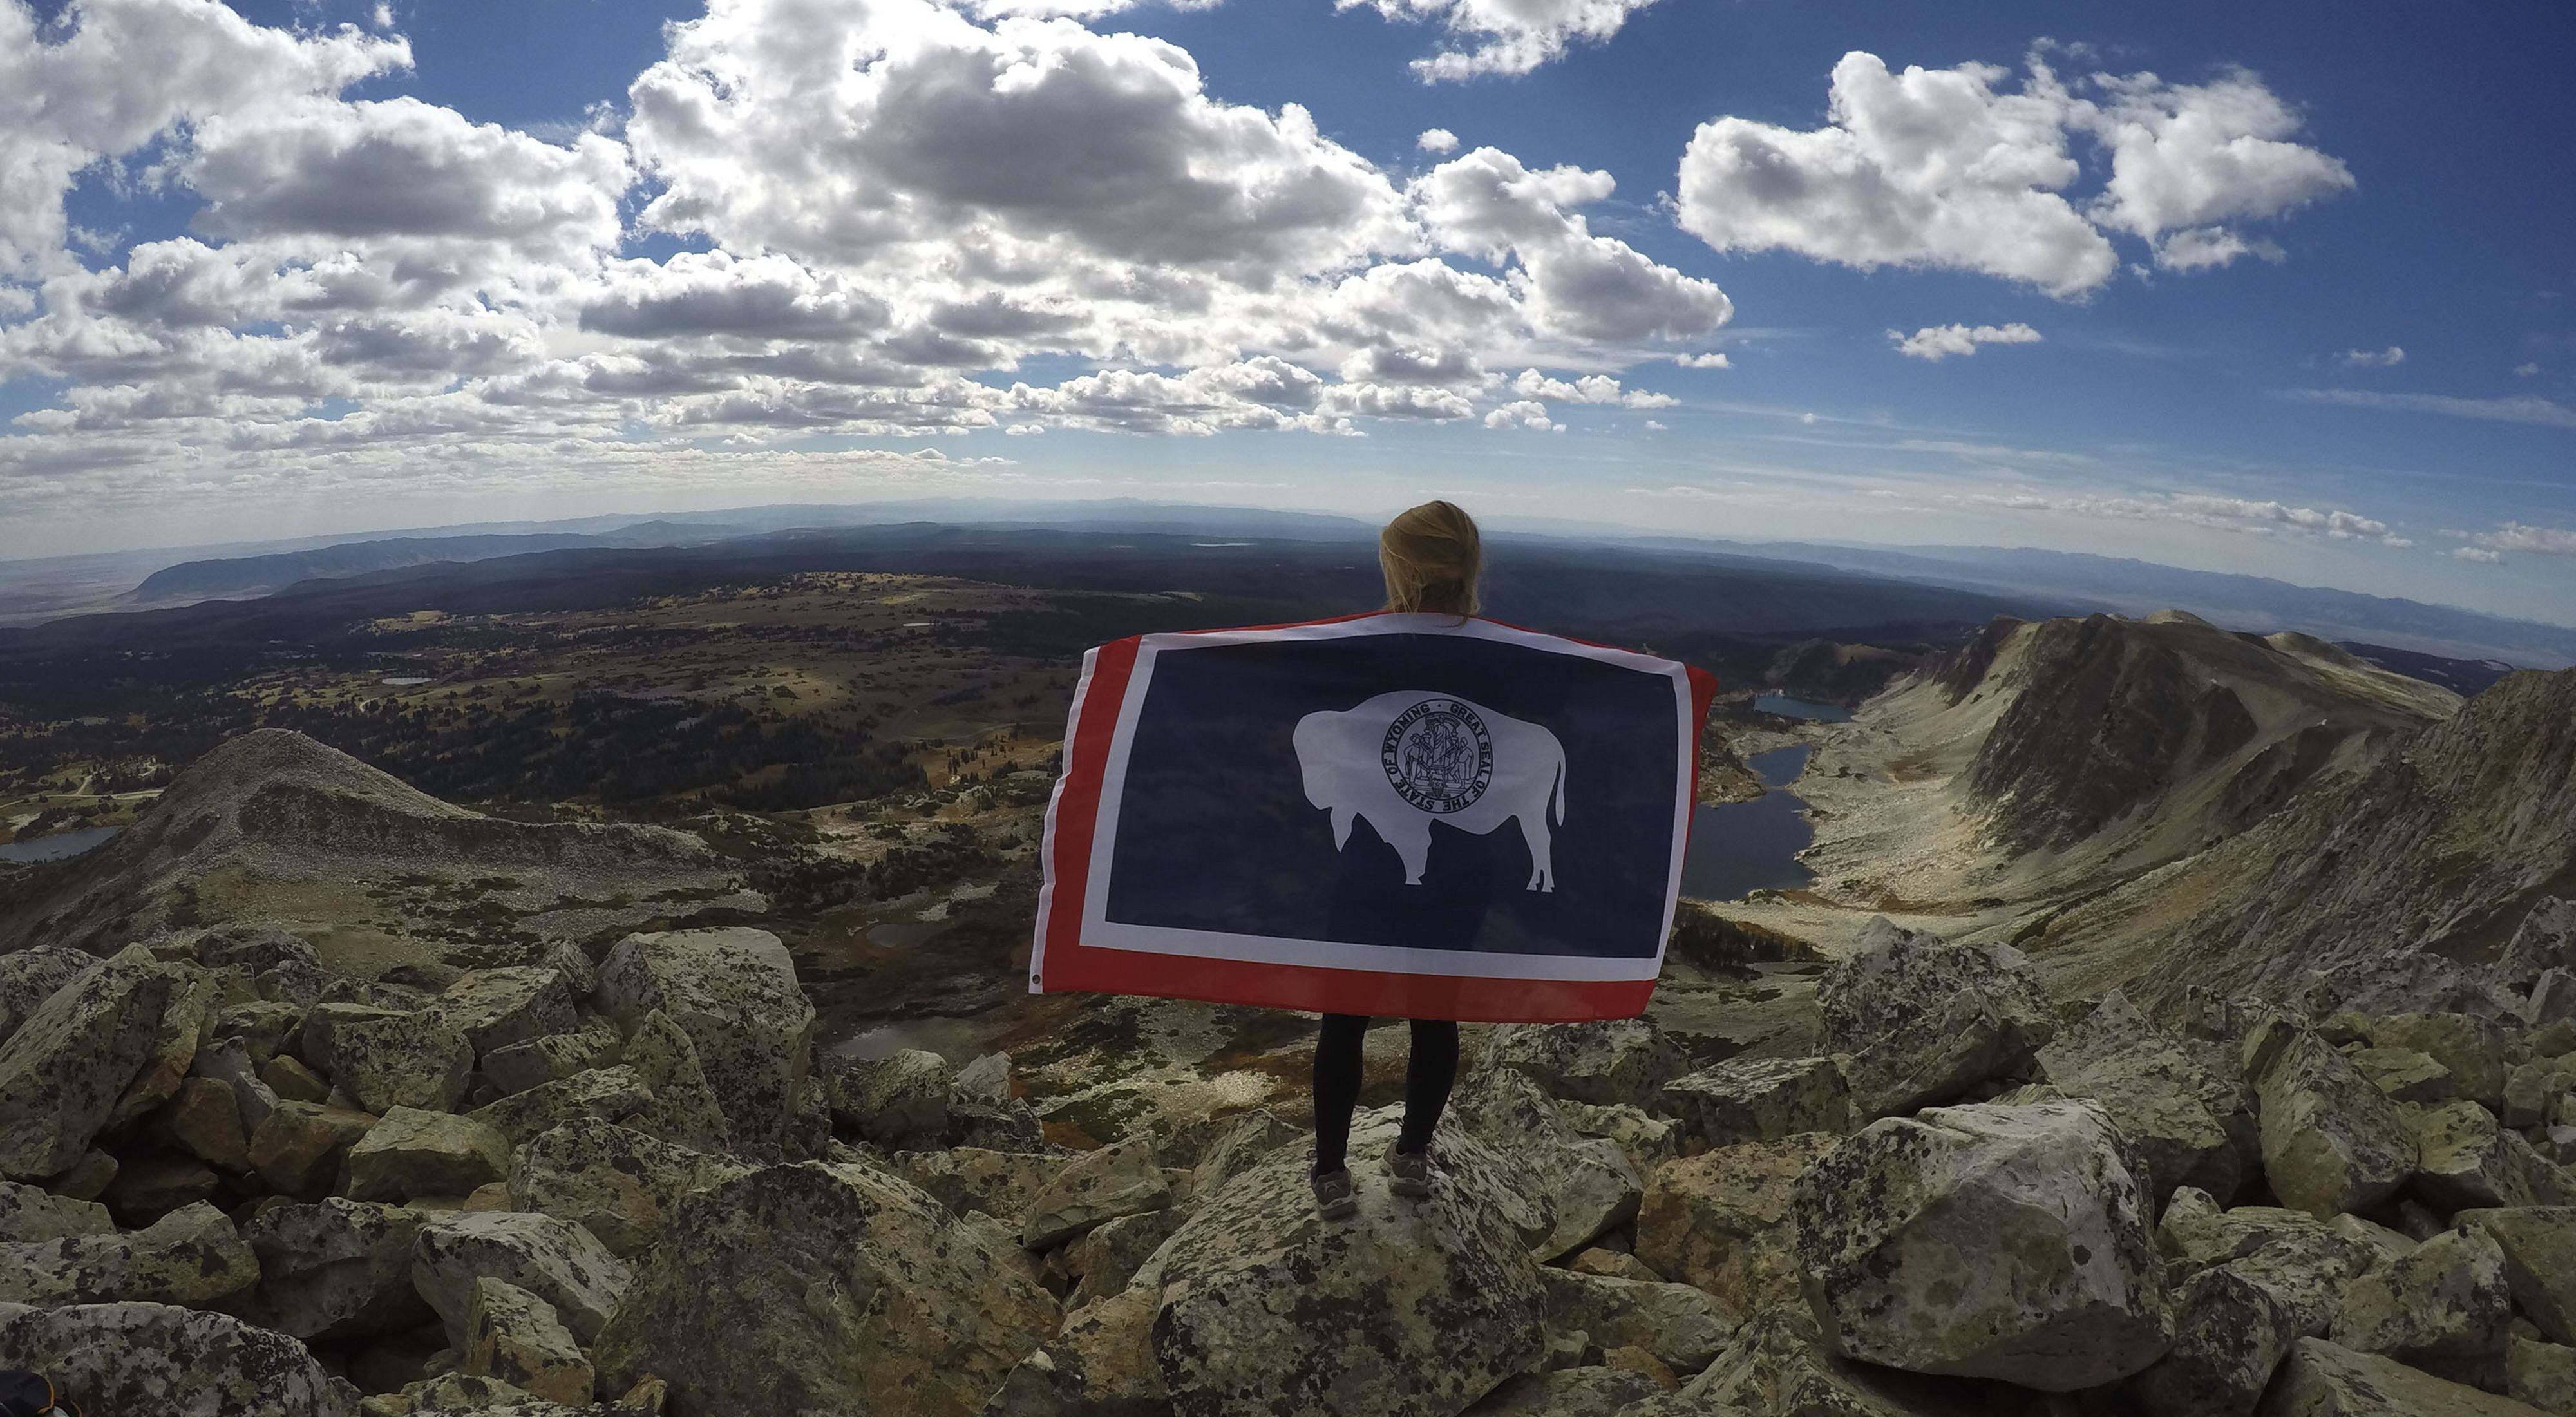 Young girl shows her Wyoming pride on top of a snow-capped peak.